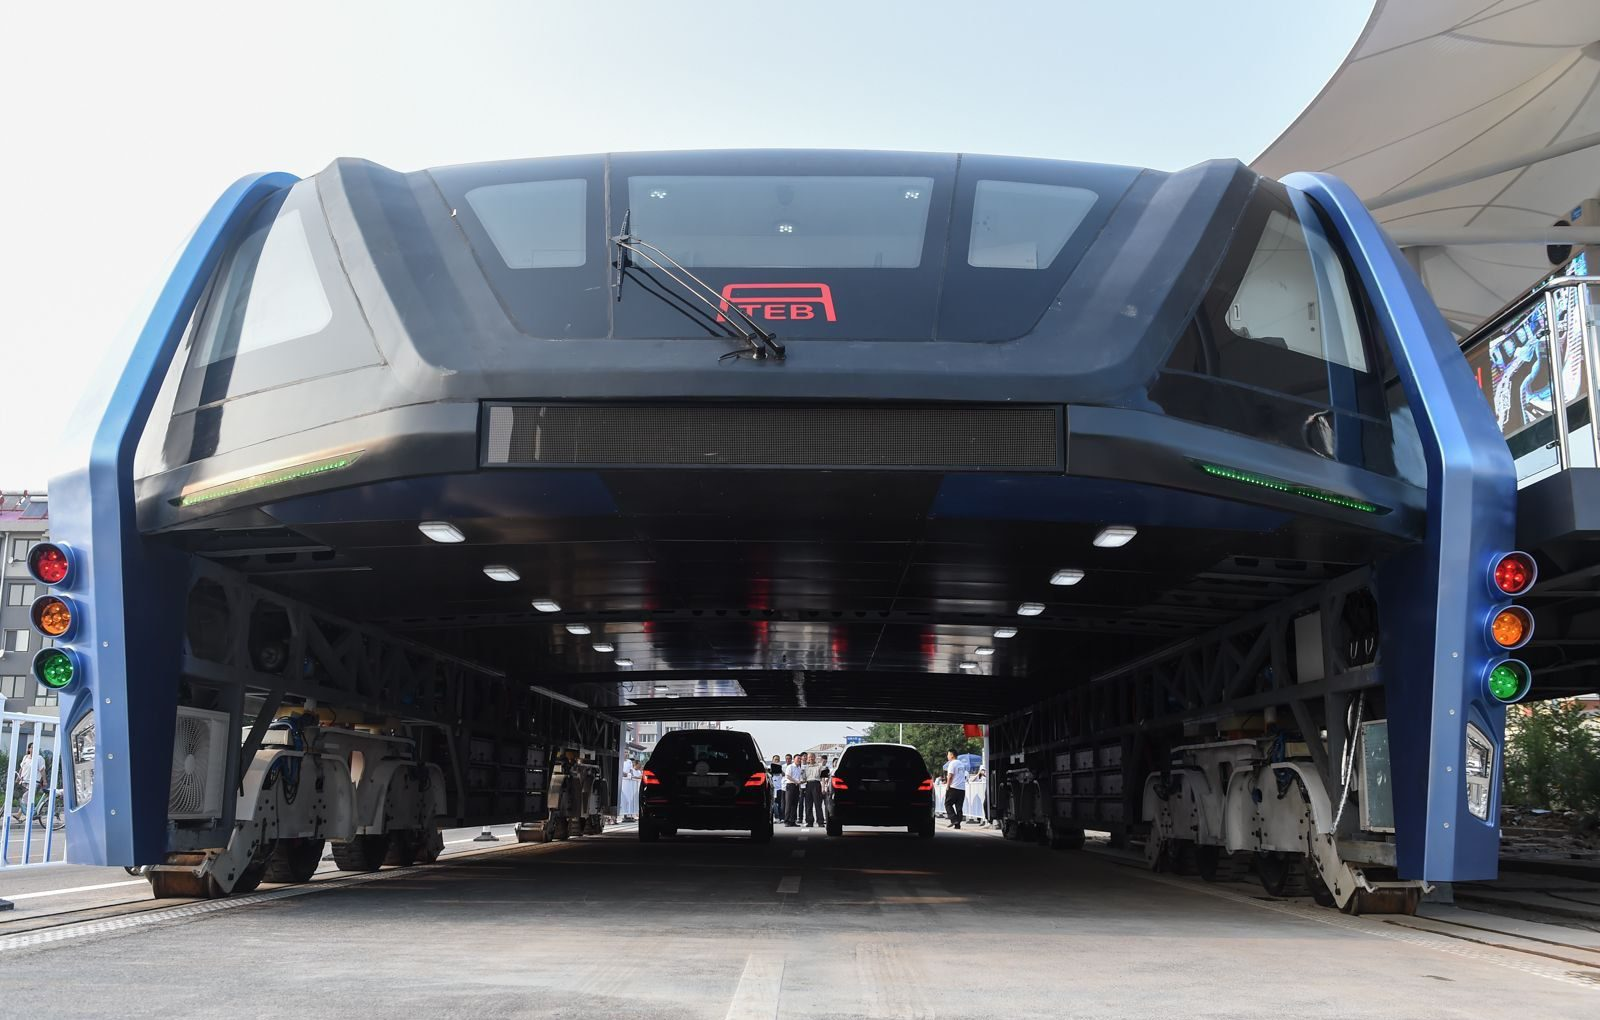 China's elevated road bus may have been a scam after all